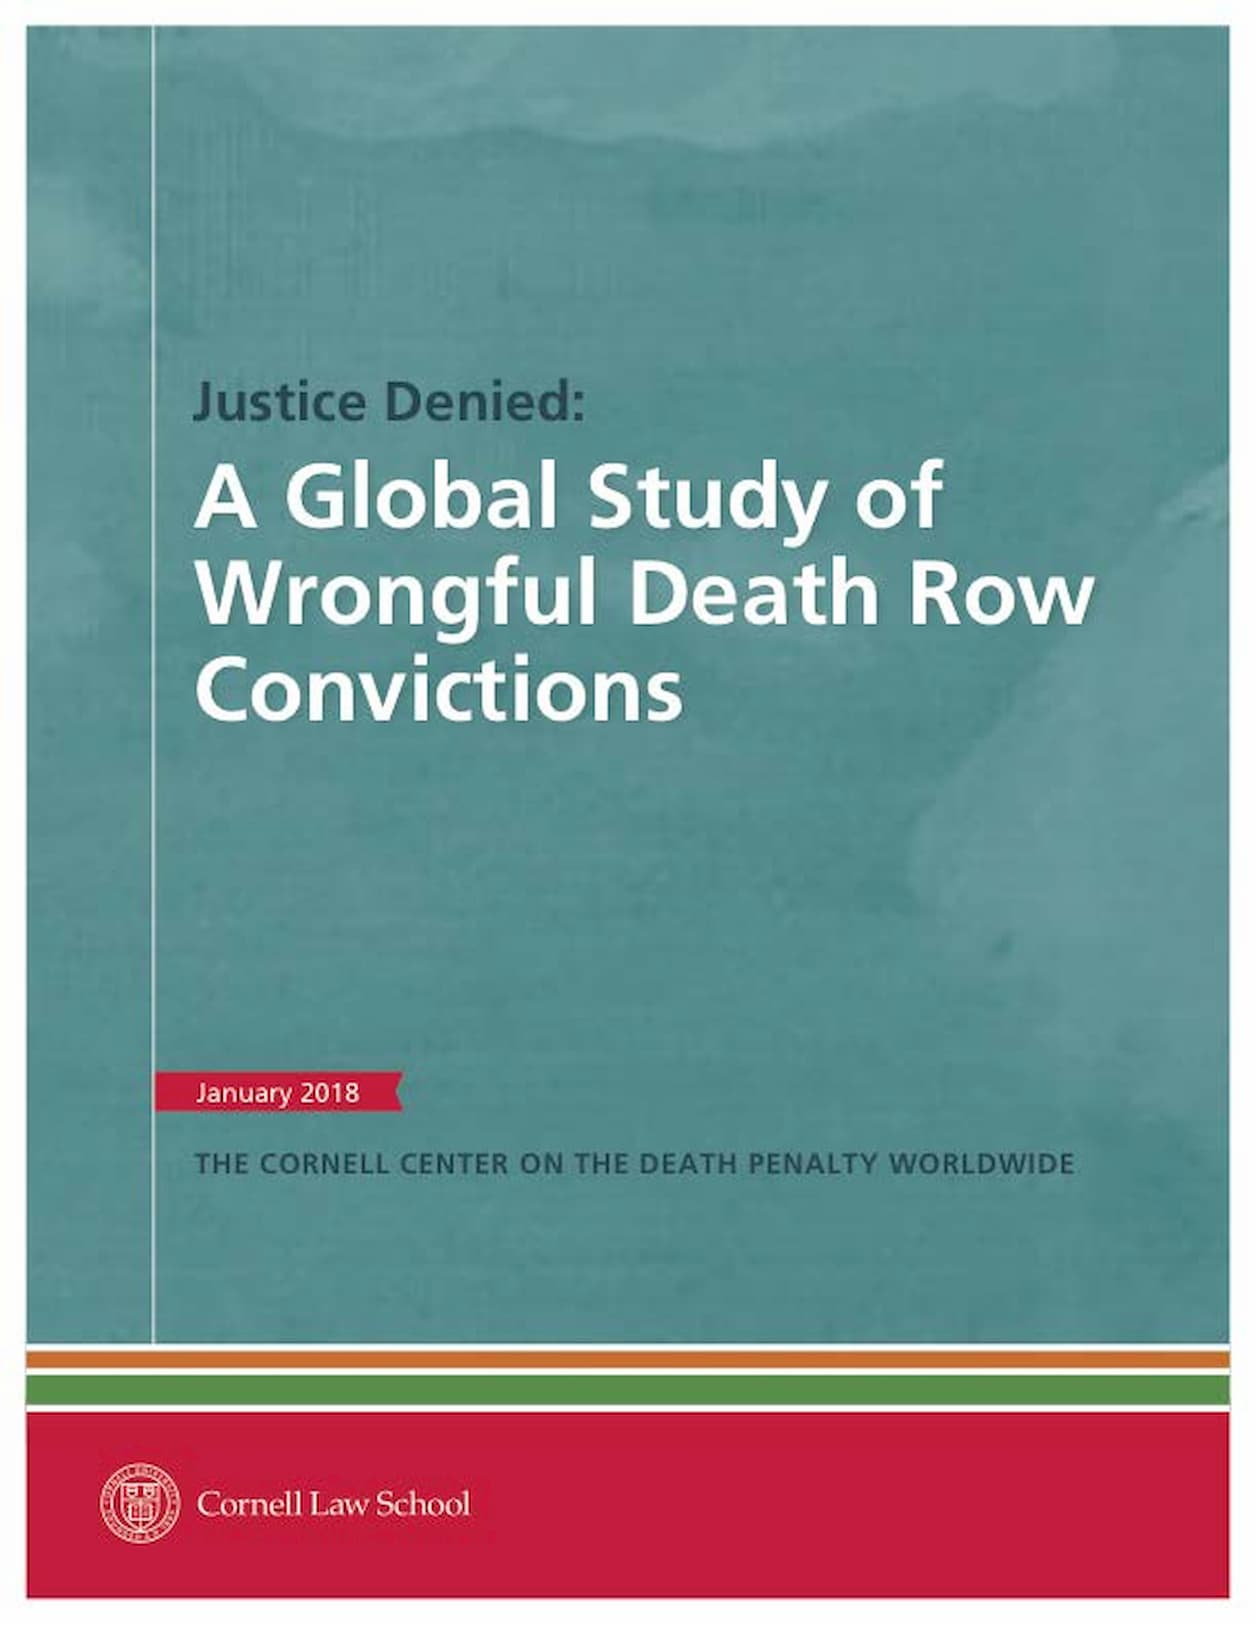 Justice-Denied-A-Global-Study-of-Wrongful-Death-Row-Convictions Cover Page